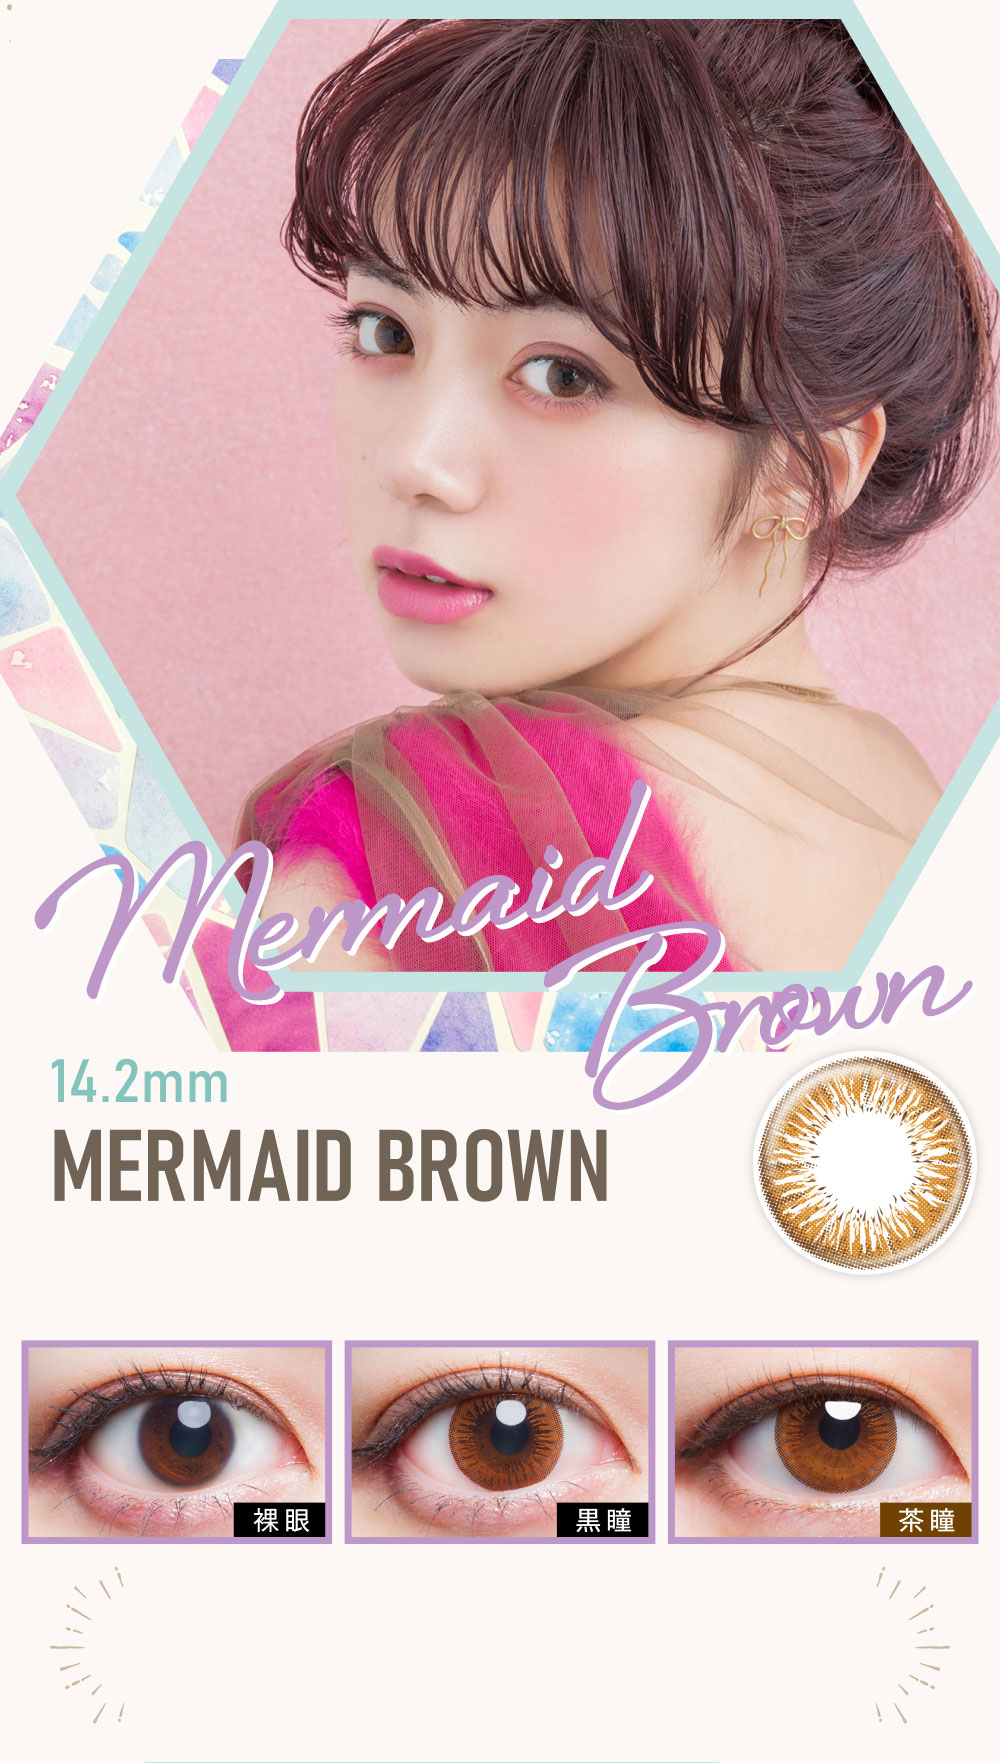 MERMAID BROWN